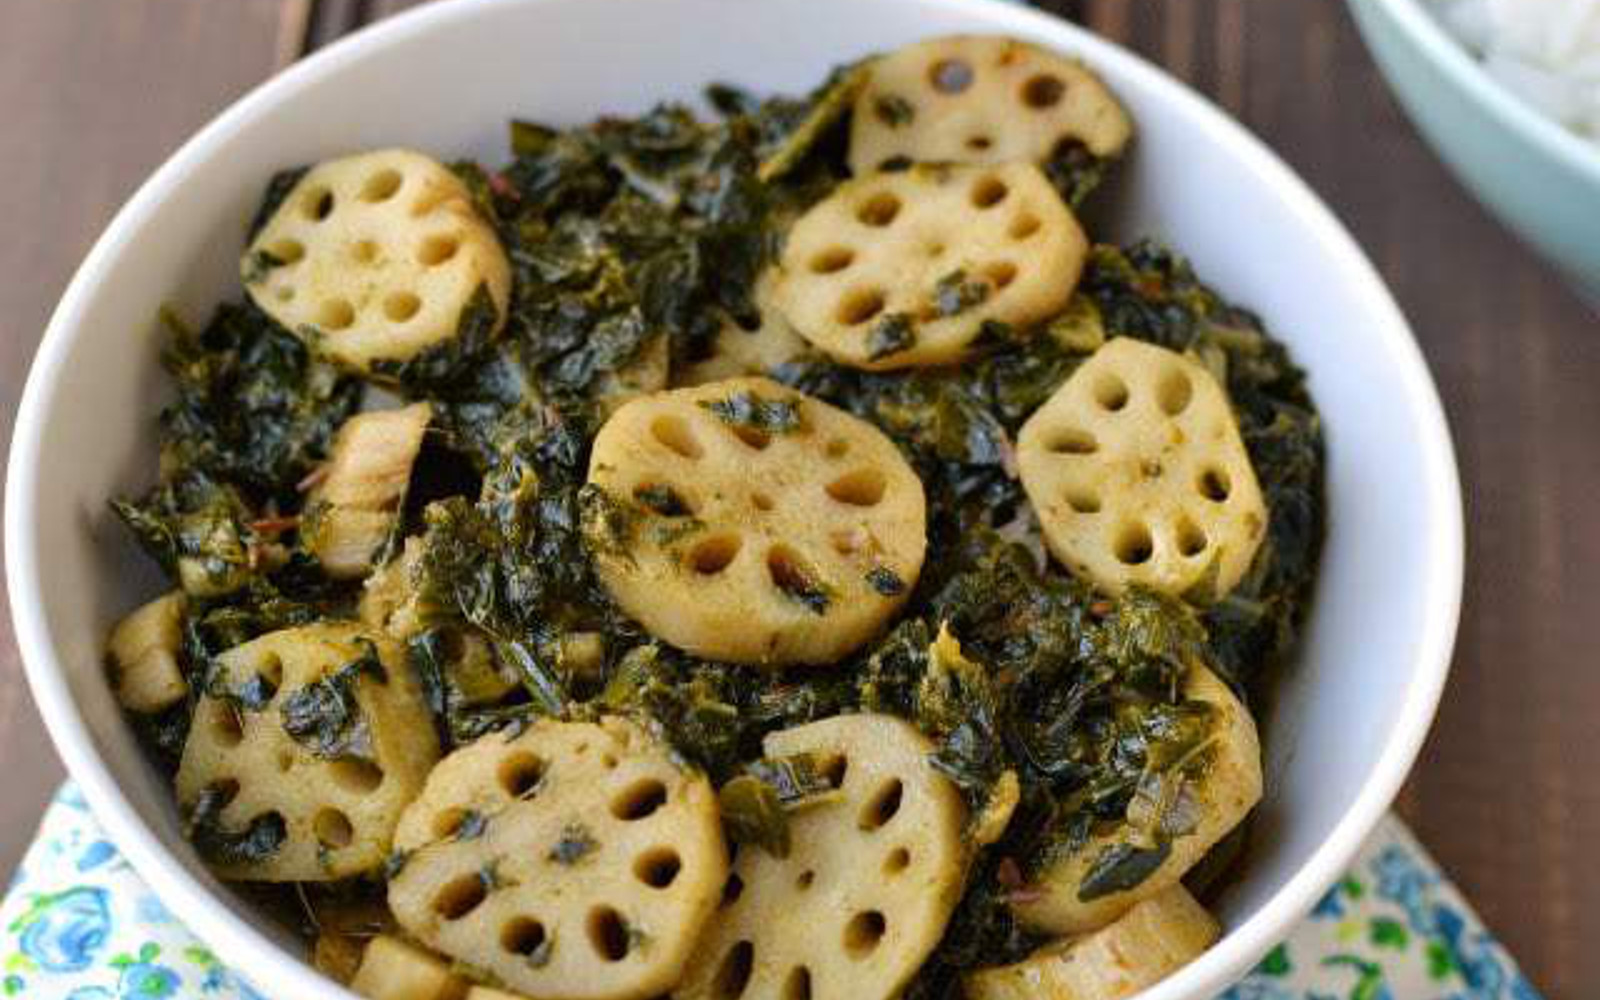 Palak Nadir: Spinach and Lotus Stem Curry